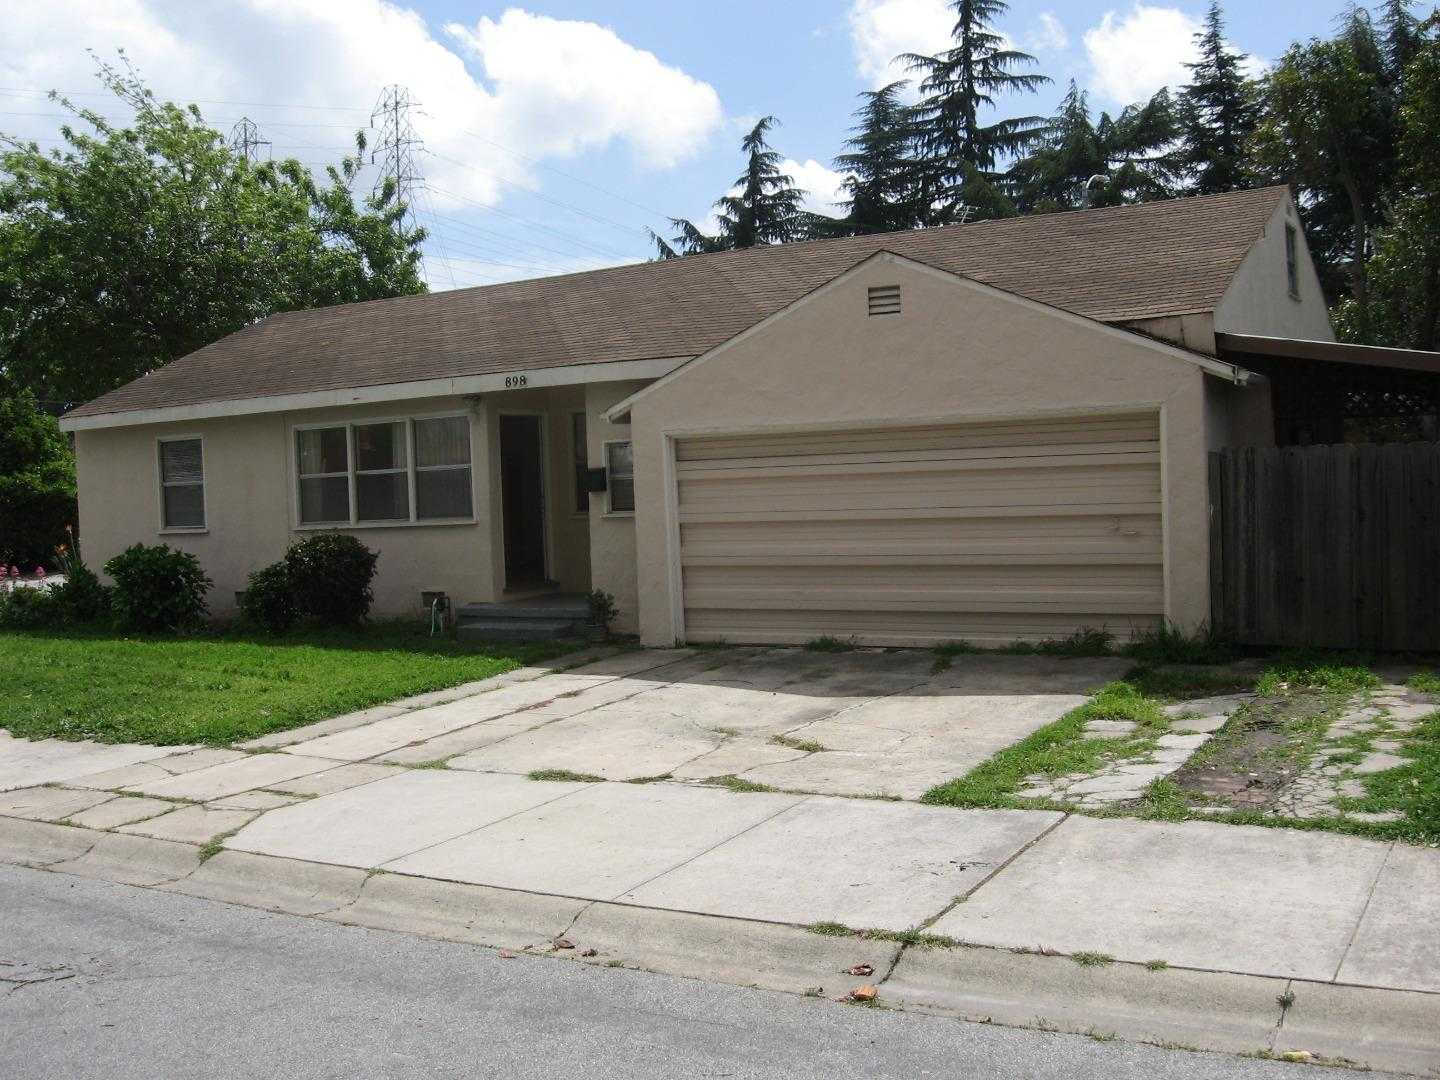 $1,099,000 - 3Br/1Ba -  for Sale in Sunnyvale